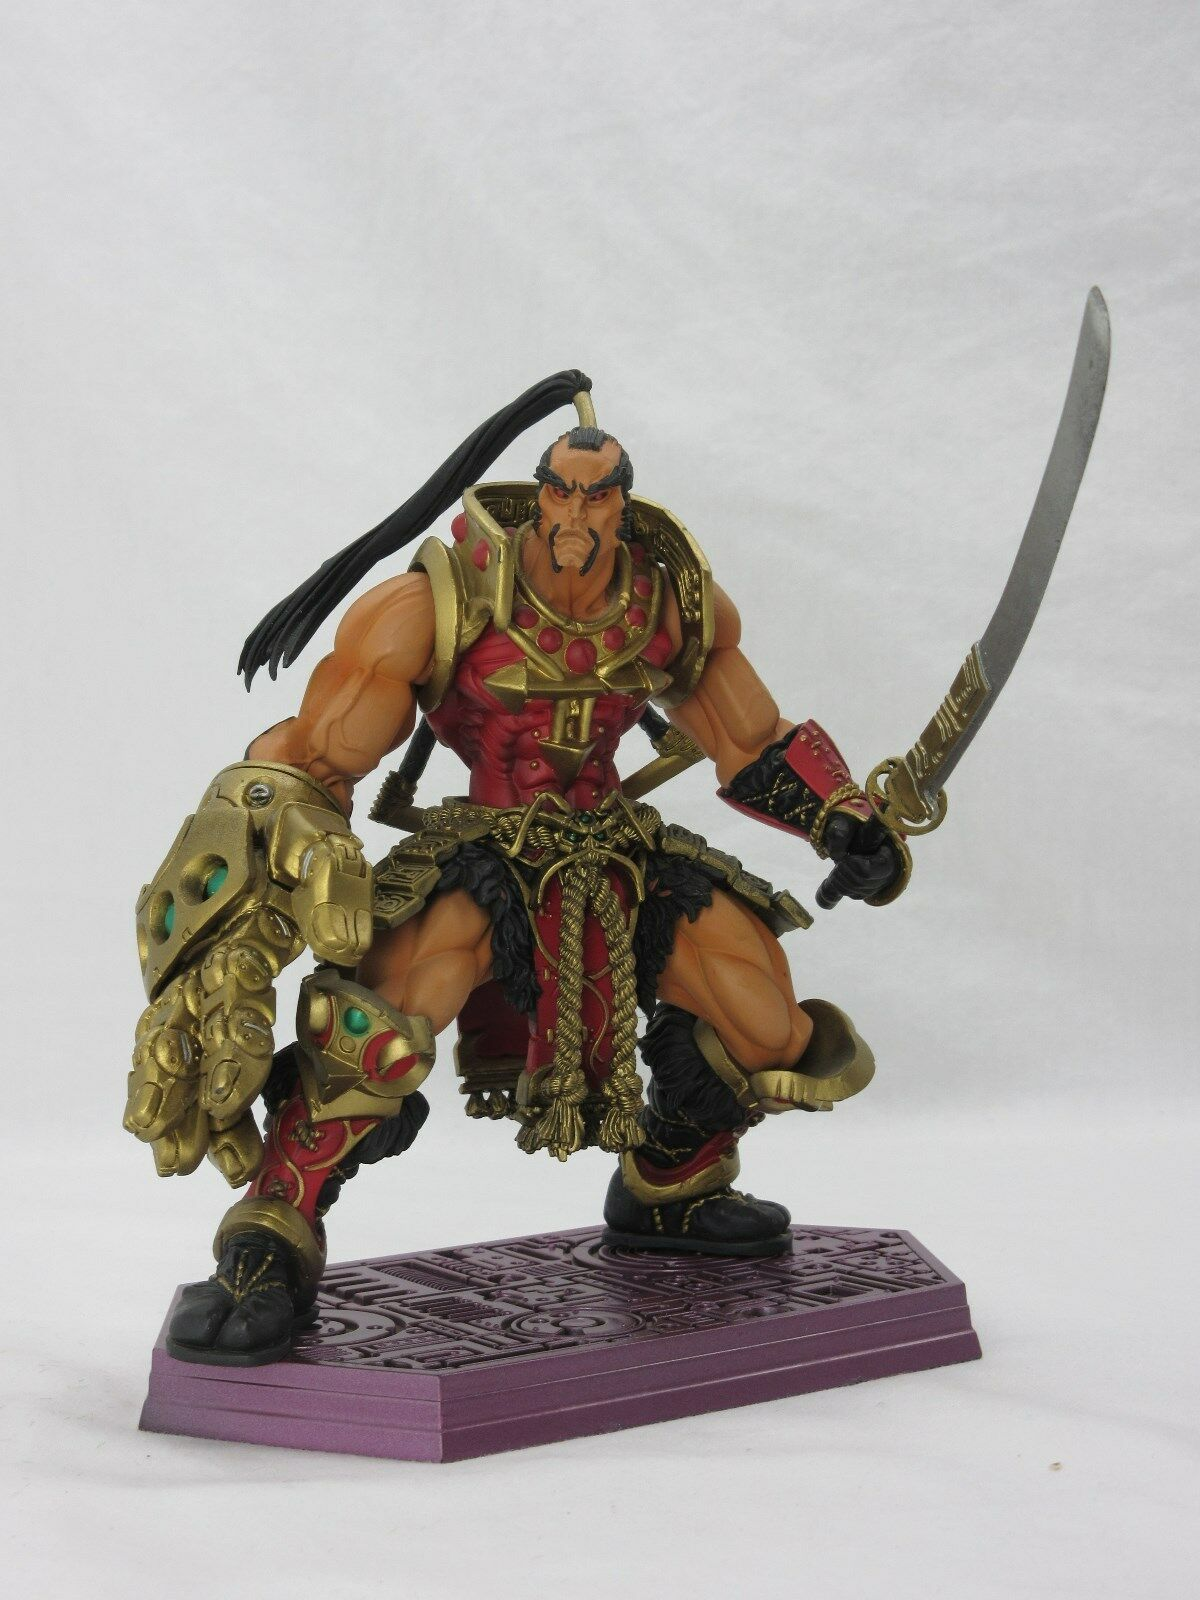 MOTU,JITSU,200x,Neca statue,figure,with weapons,Masters of the Universe,He man